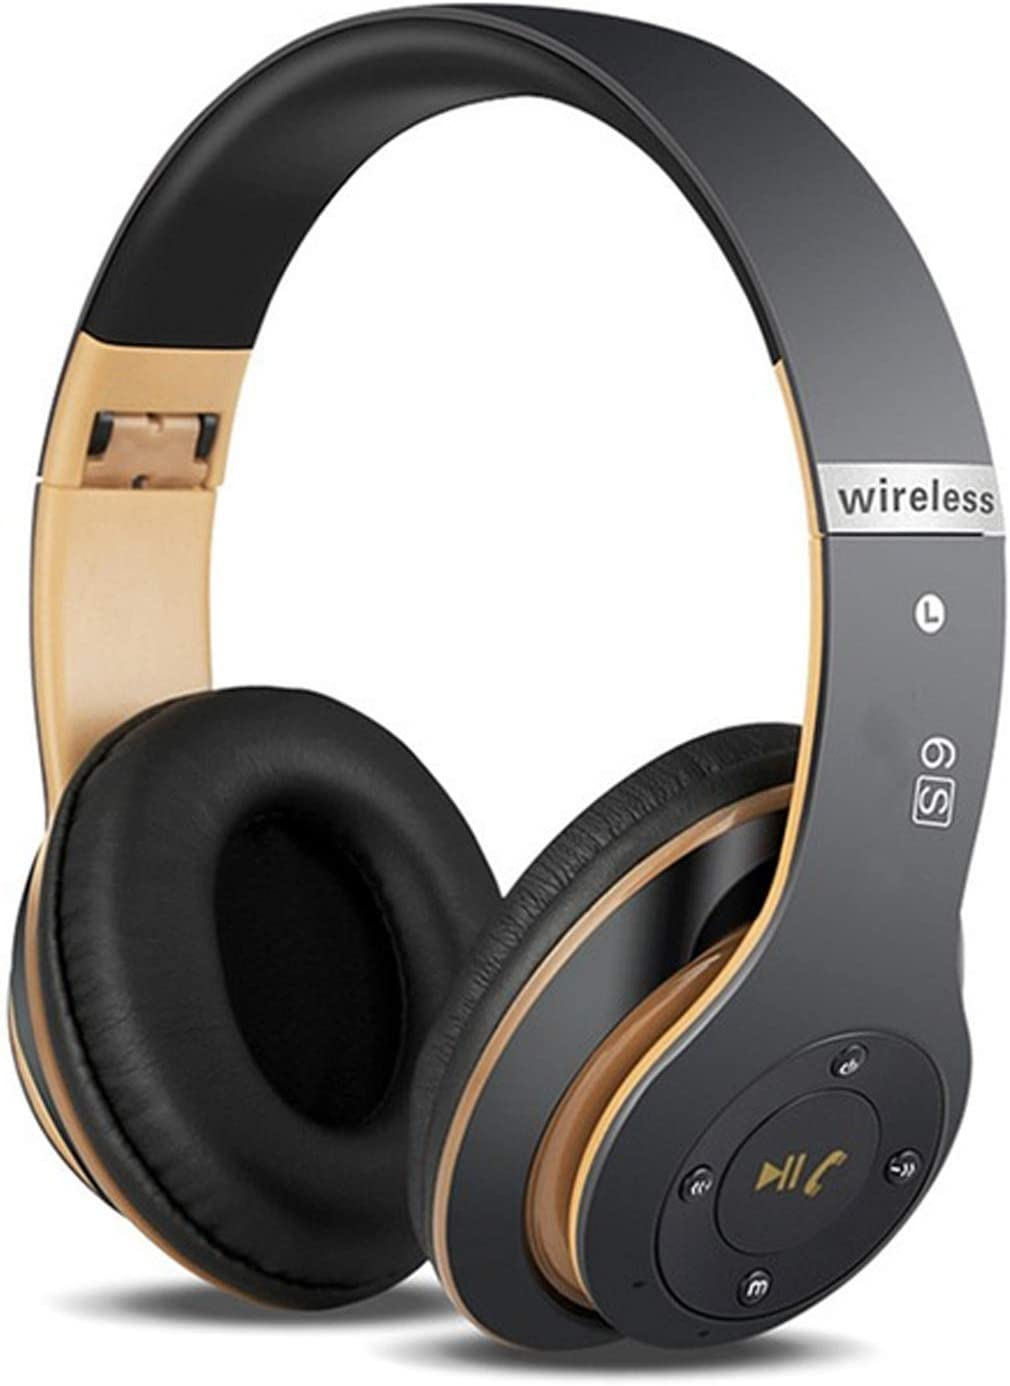 6S Wireless Headphones Over Ear,Noise Cancelling Foldable Wireless Stereo Headsets Earbuds with Built-in Mic, Micro SD TF, FM for iPhone Samsung iPad PC Black Gold